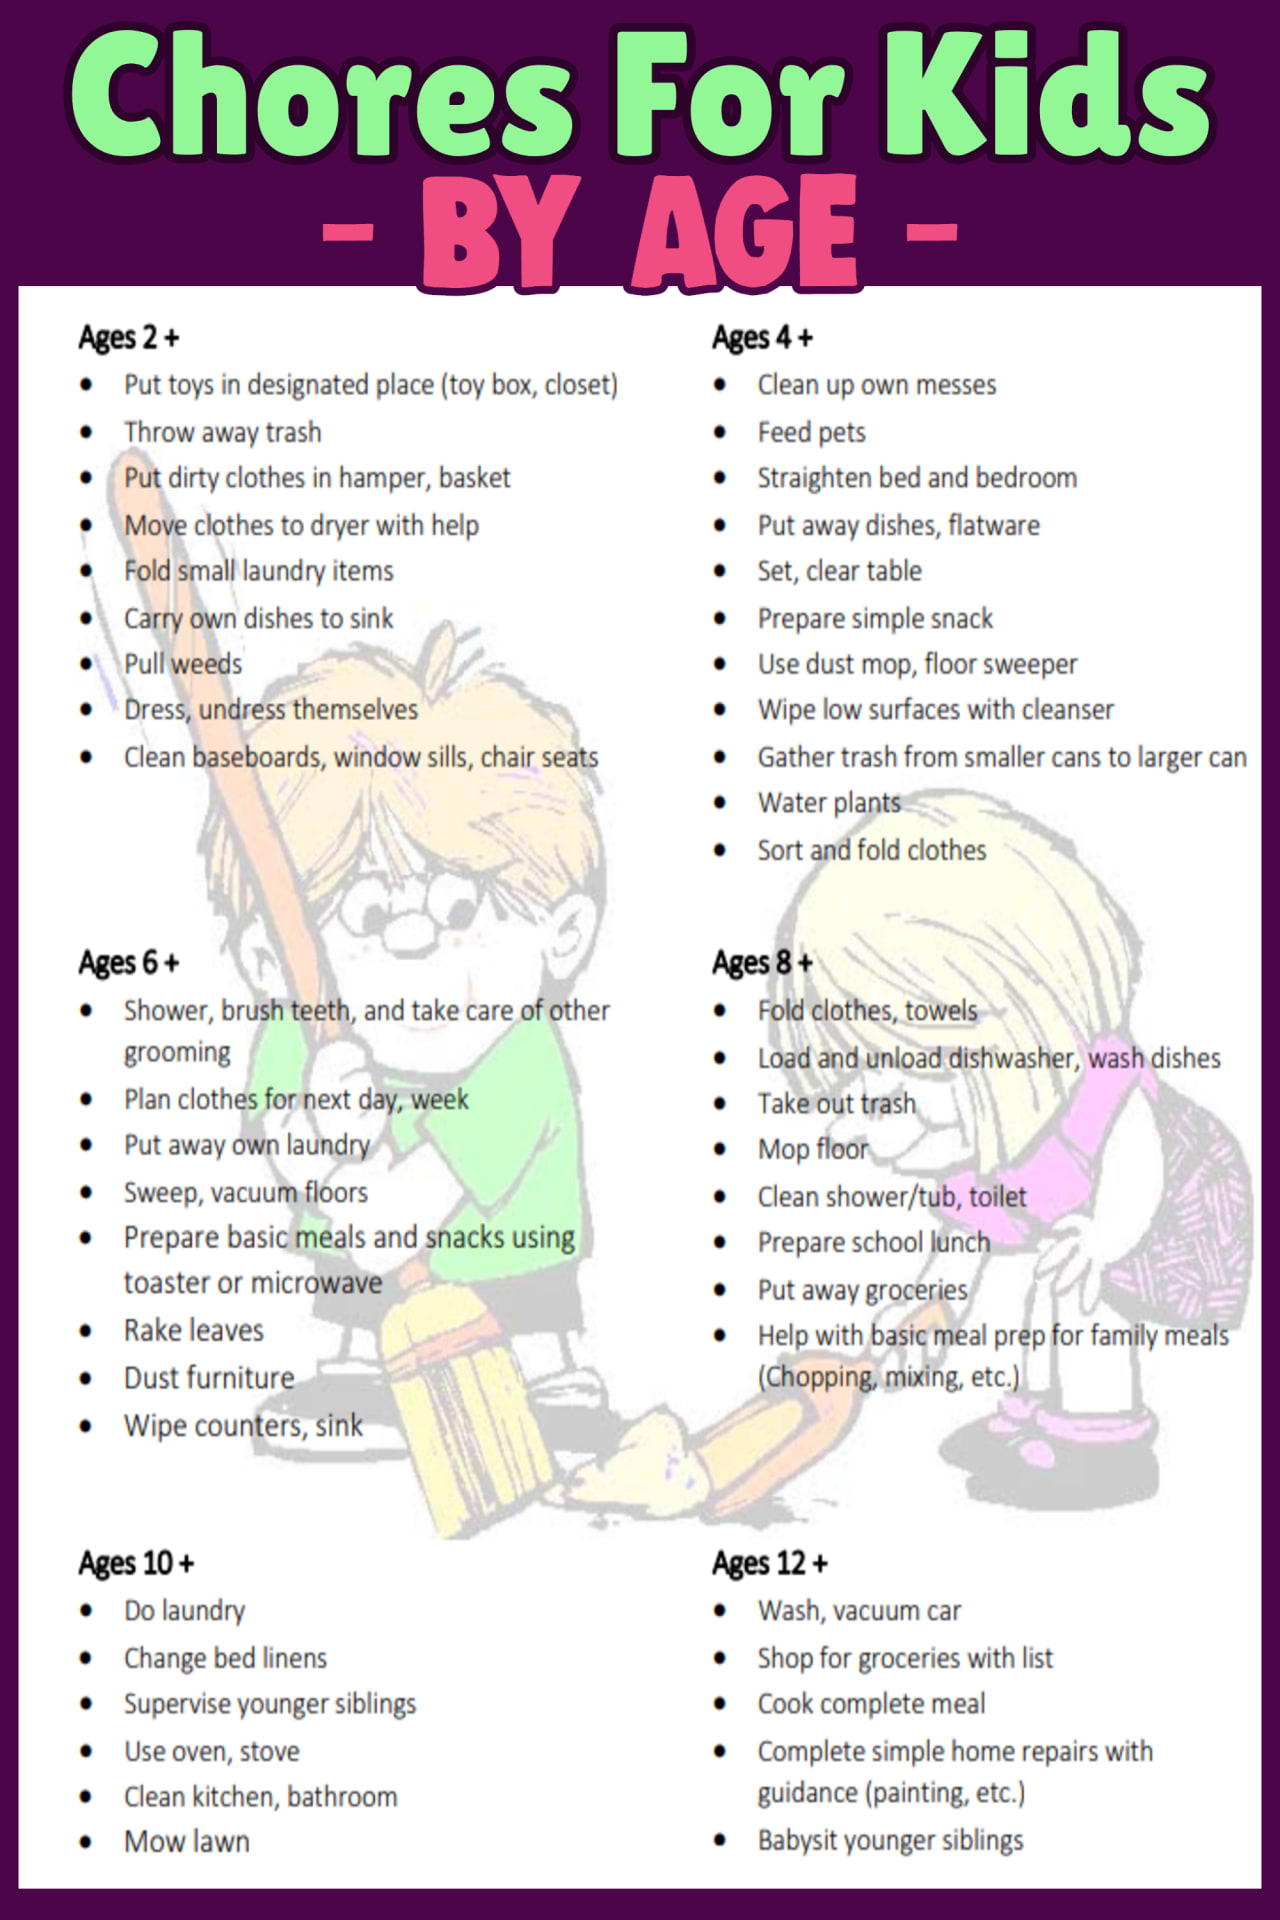 Chores for kids by age - chores for kids for chore chart ideas - age appropriate chores for kids - house chores, daily chores and household chores for kids of all ages - teens, 4, 5 6, 7, 8 years old - 10,100,12 year old tweens, perschool and toddlers chore lists too